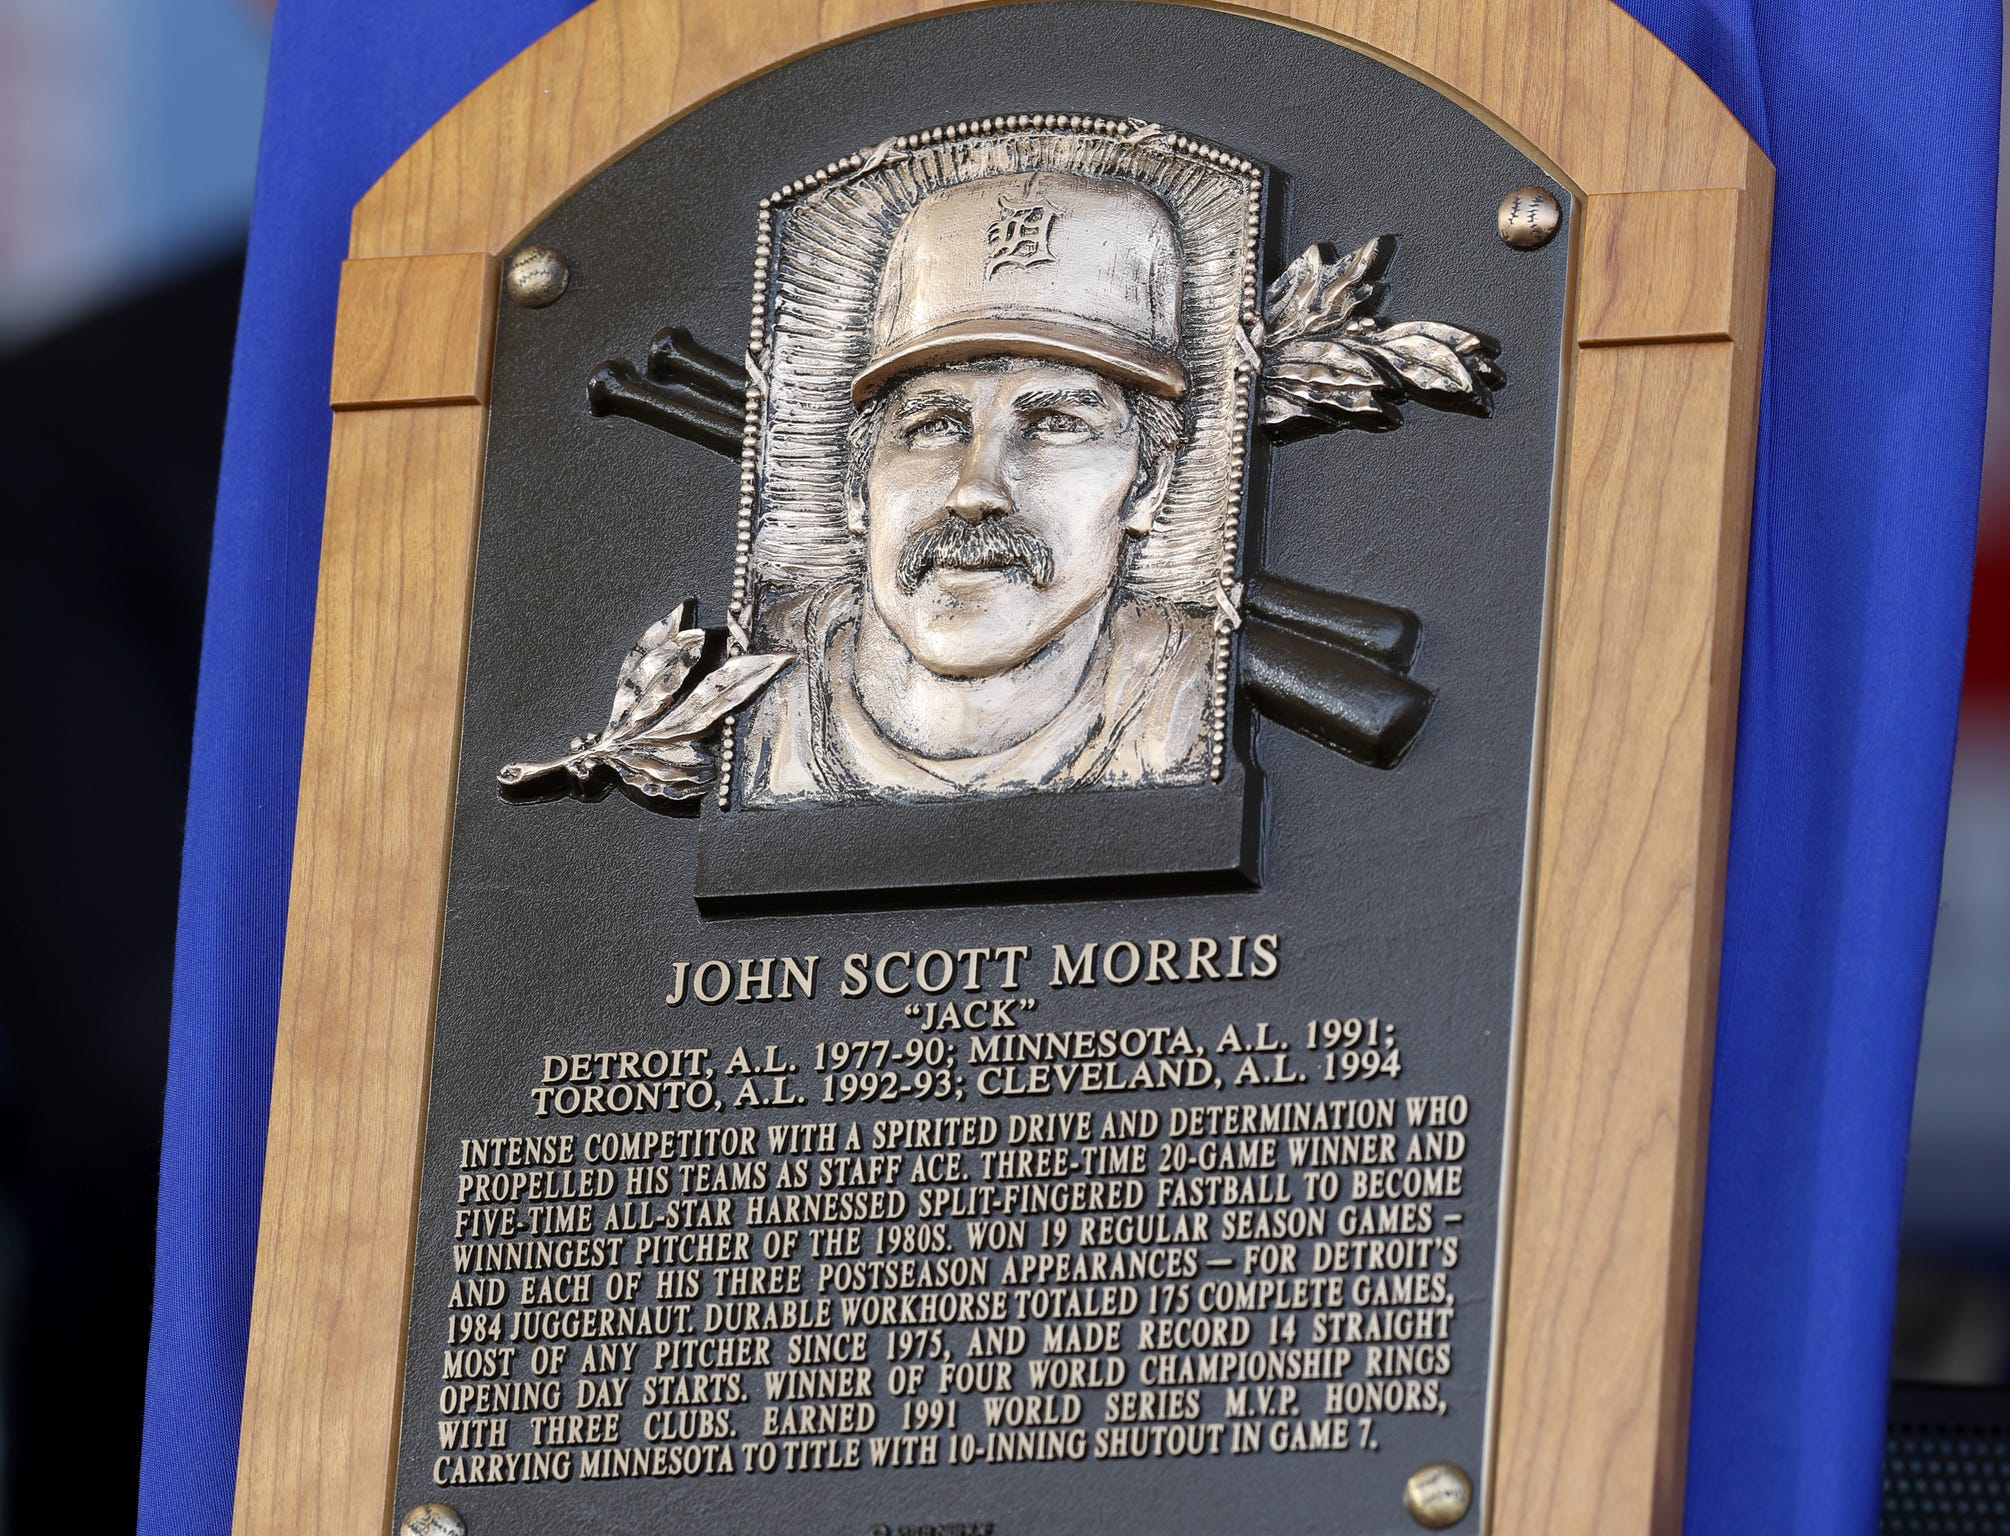 The Hall of Fame plaque of Tigers great Jack Morris at the Clark Sports Center during the National Baseball Hall of Fame induction ceremony in Cooperstown, N.Y., on Sunday, July 29, 2018.